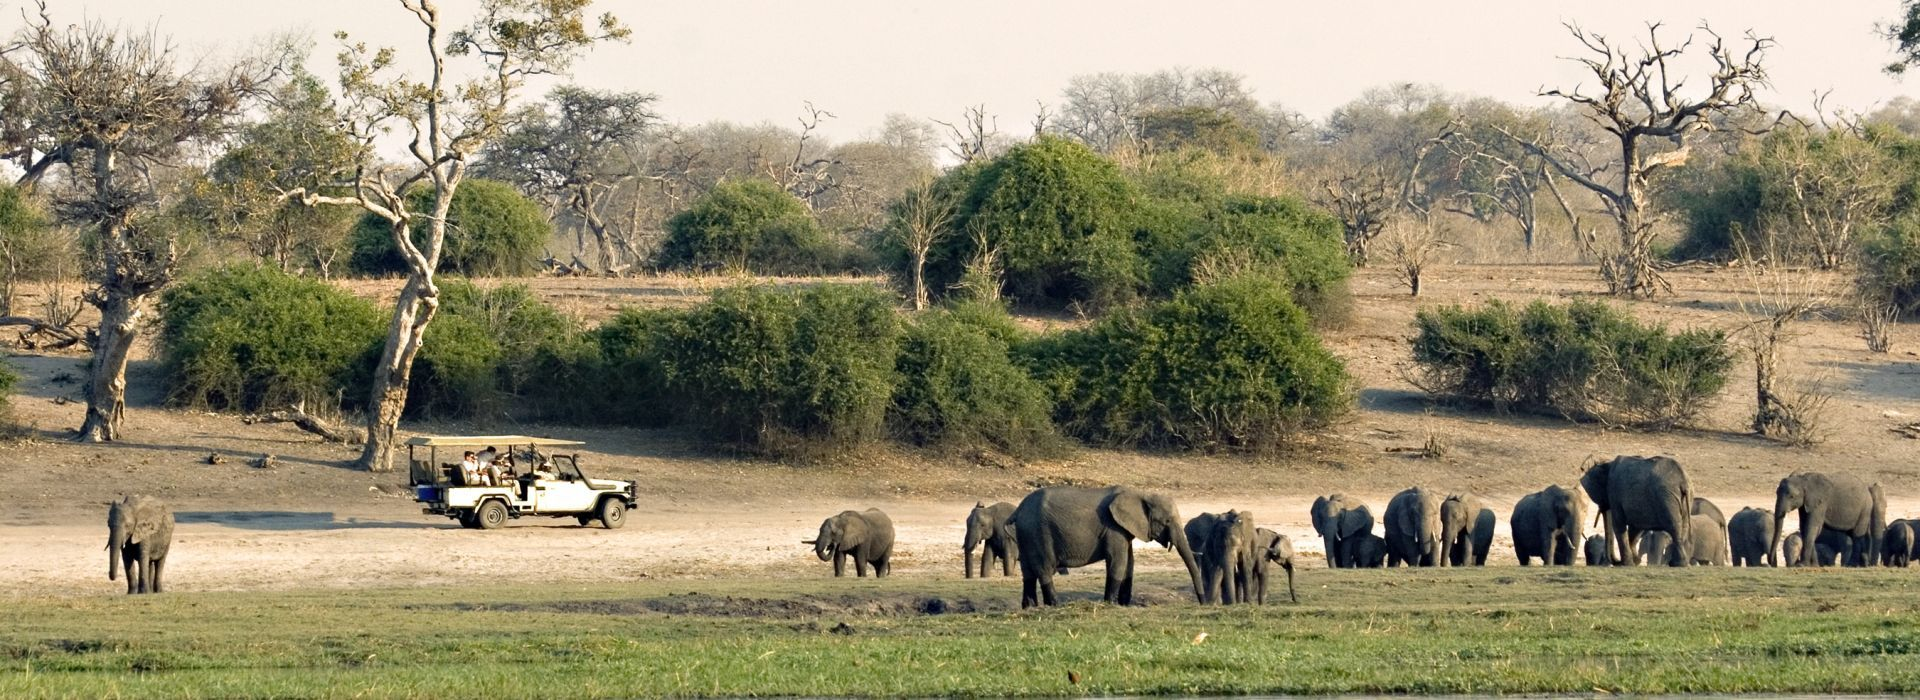 Sightseeing, attractions, culture and history Tours in Maun